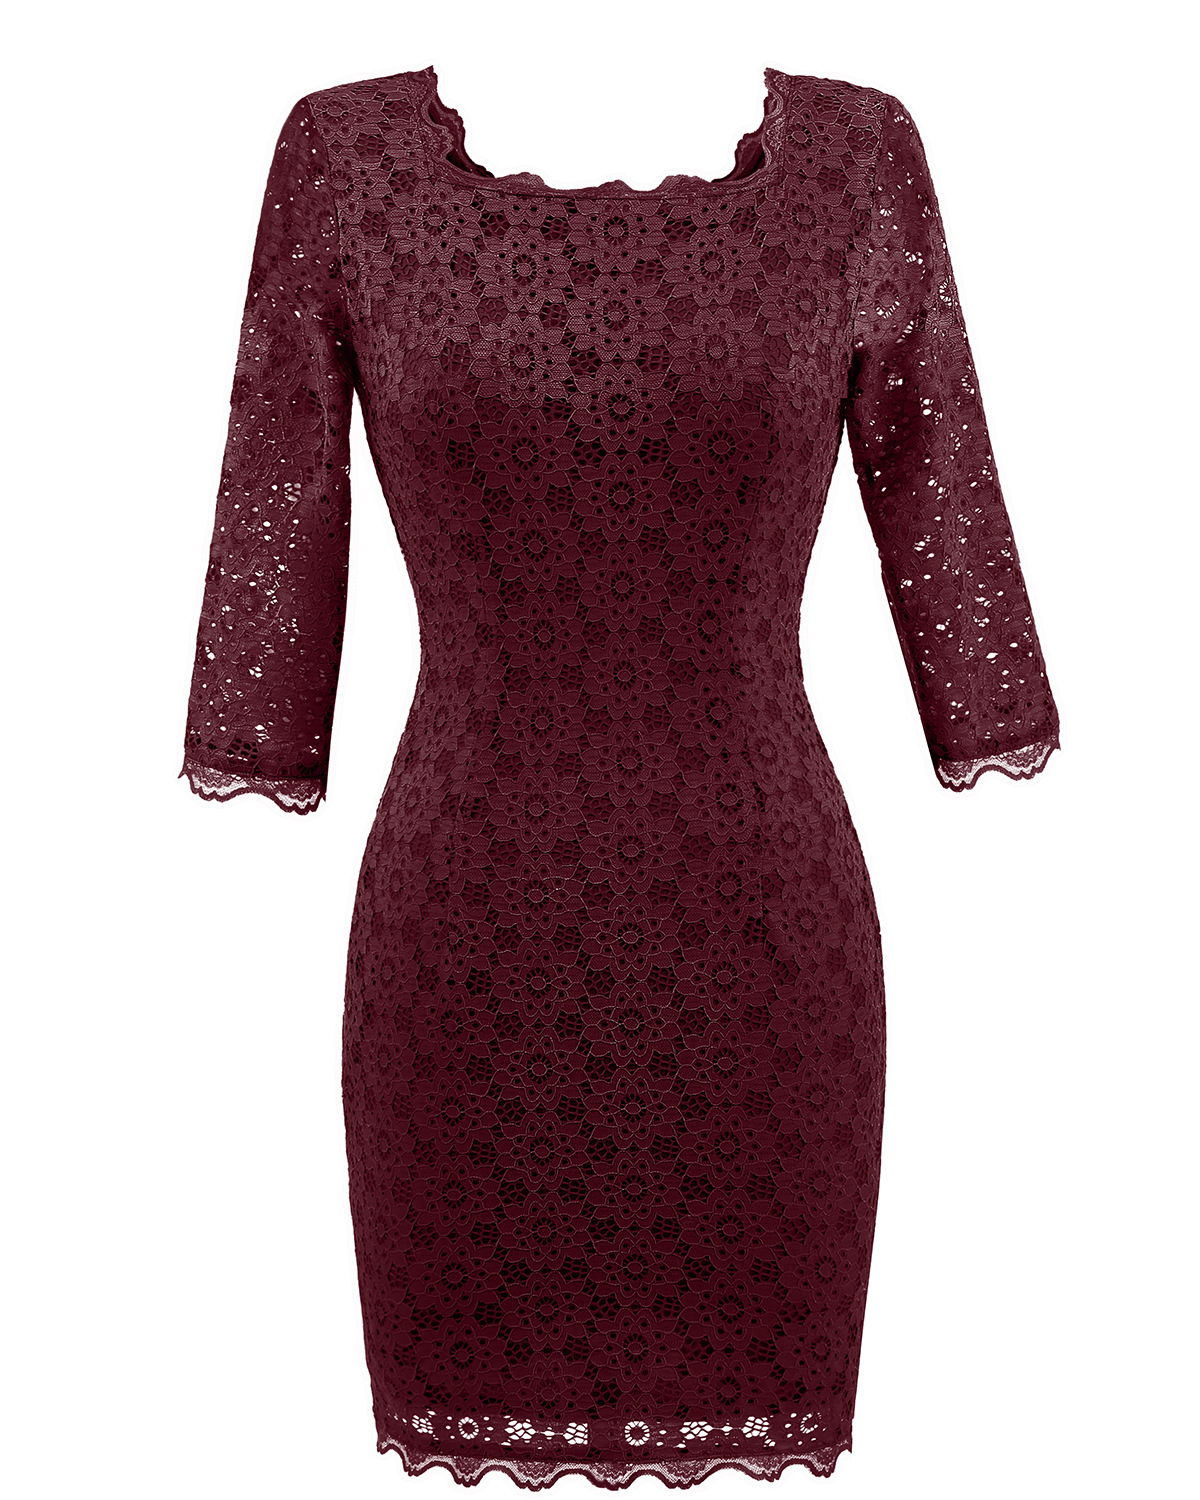 Vintage Lace Bodycon Pencil Dress Sexy Backless Square Collar 3/4 Sleeve Women Sheath Cocktail Party Dress burgundy